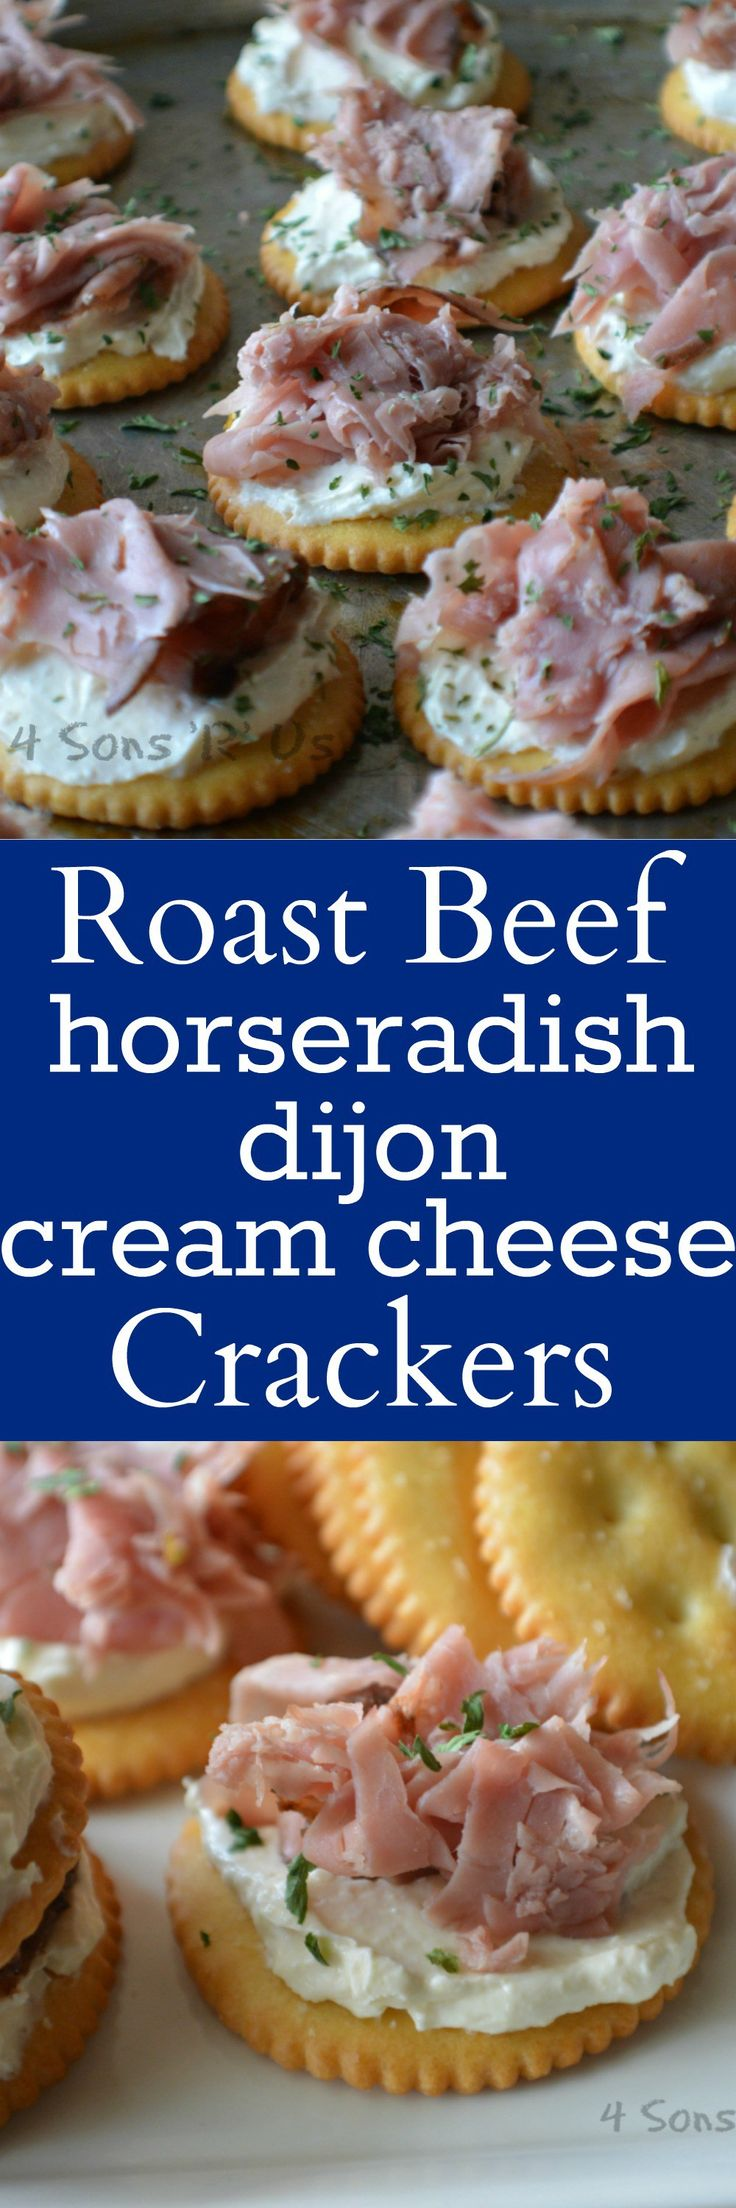 Just the right amount of creamy and crunchy textures, with a little zip of horseradish and the tang of gourmet mustard– Roast Beef & Horseradish Dijon Cream Cheese Snack Crackers couldn't be more perfect. These feisty little bites make a great appetizer for any gathering.